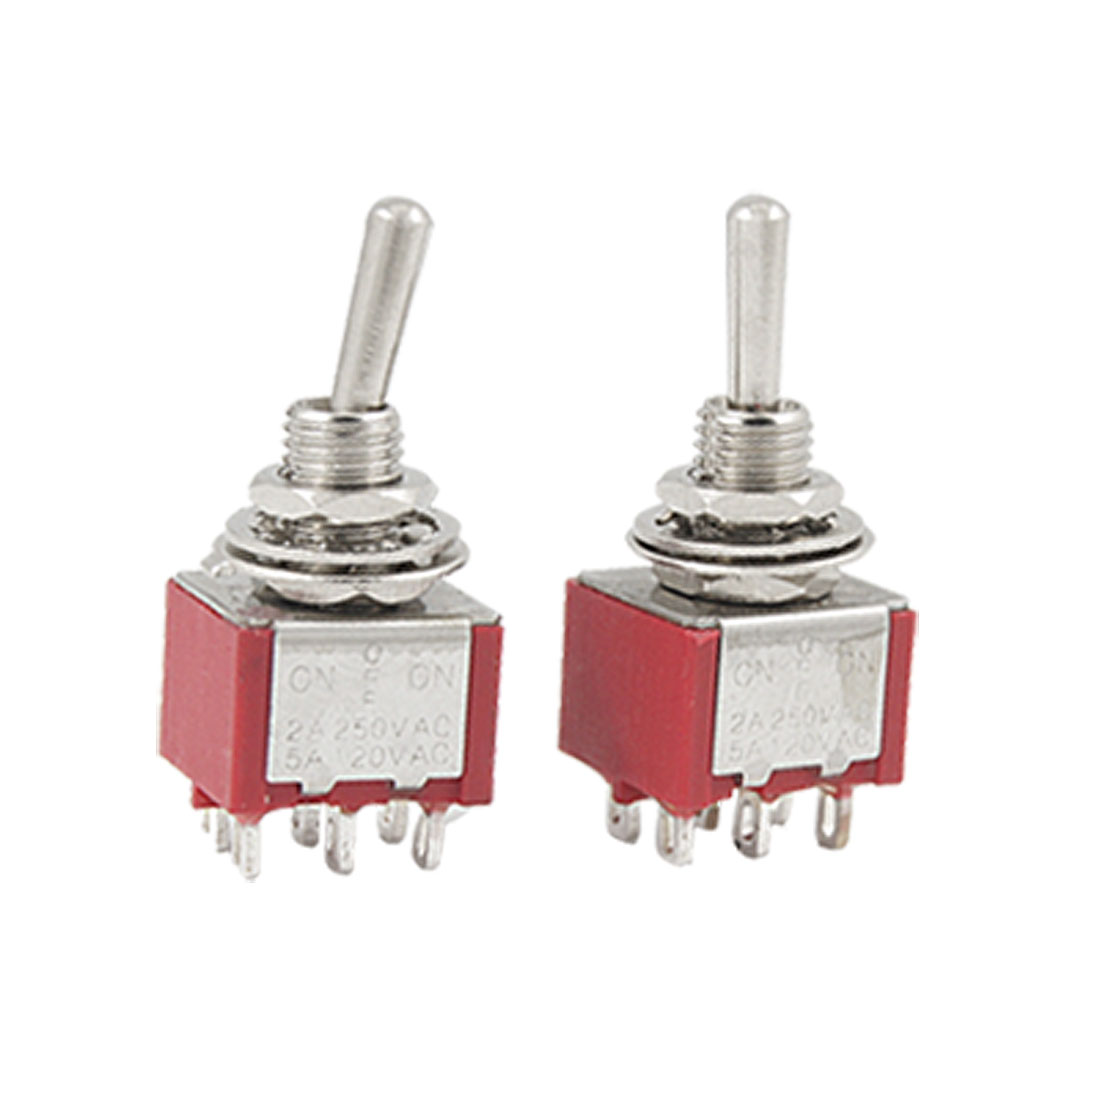 2 Pcs AC 120V/5A 250V/2A 3 Position ON-OFF-ON DPDT Toggle Switches Red